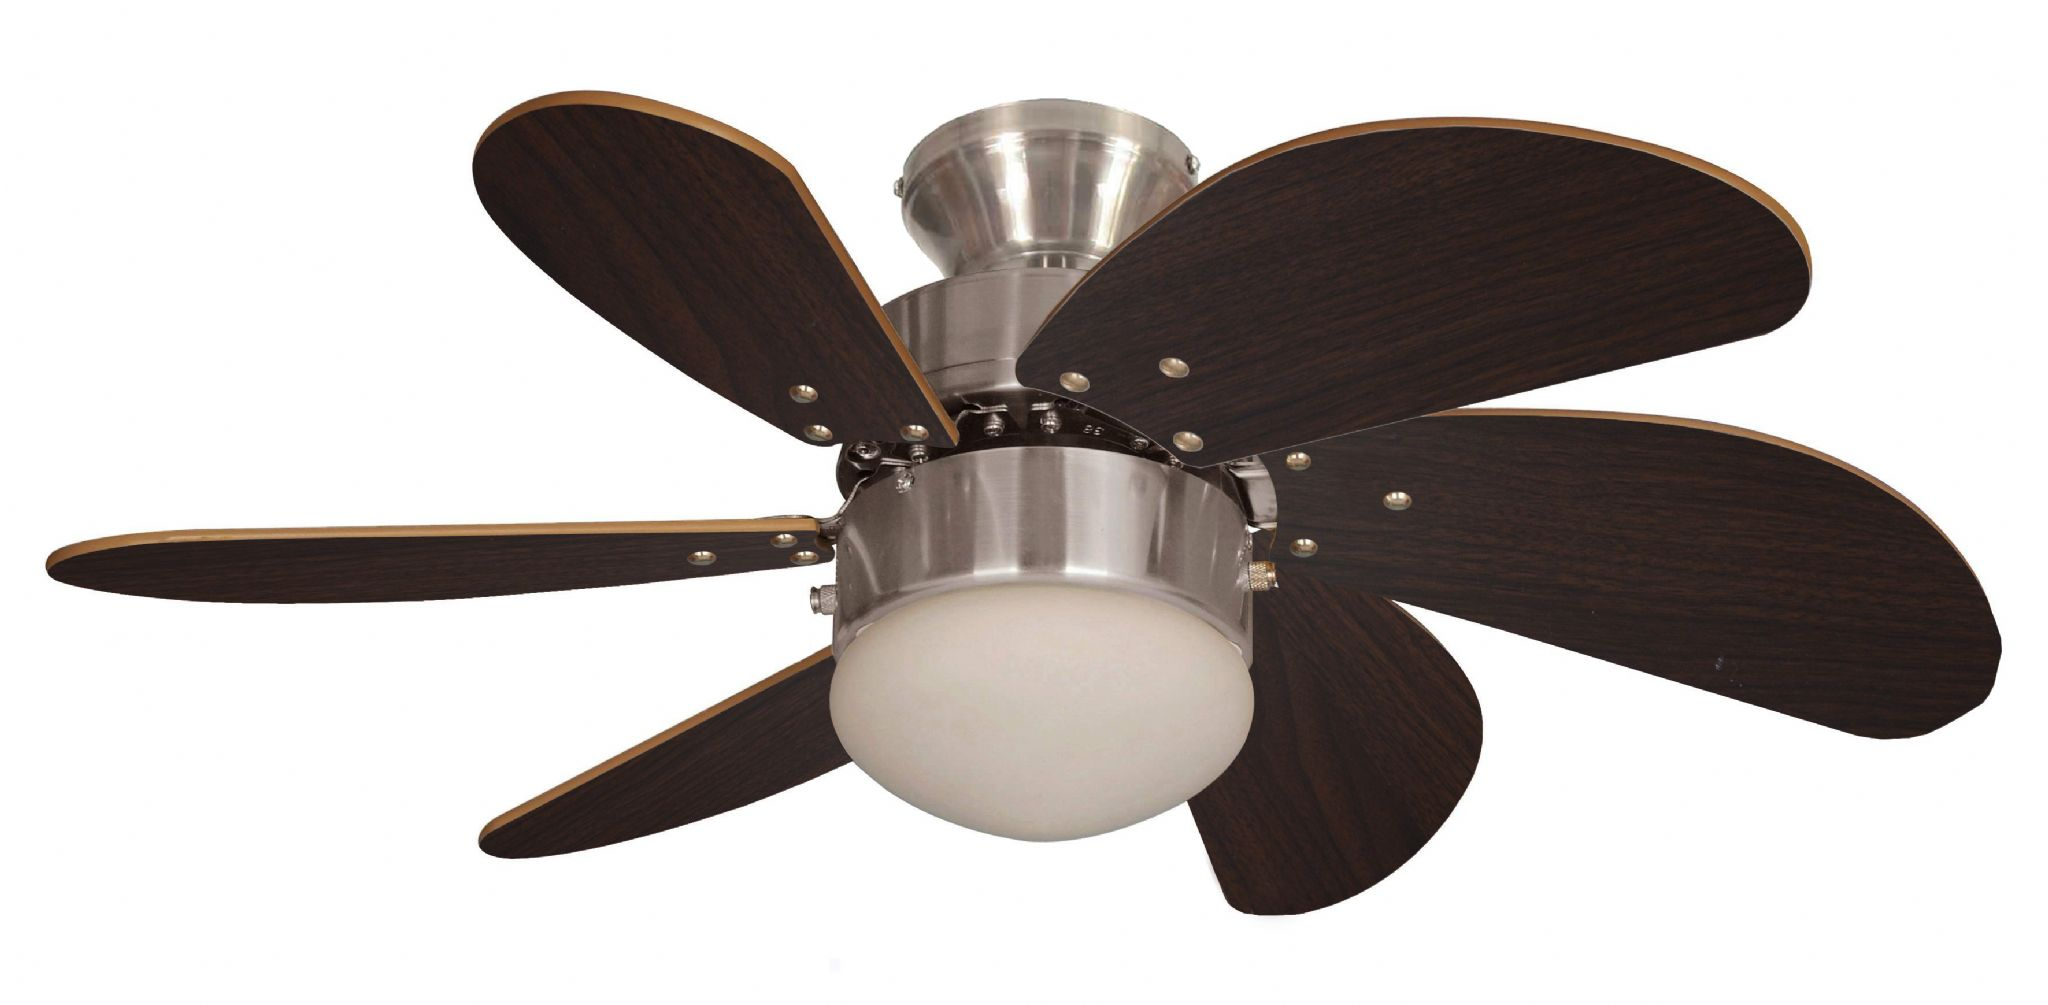 Eurofans Atlanta 30 Brushed Nickel Ceiling Fan Light 114390